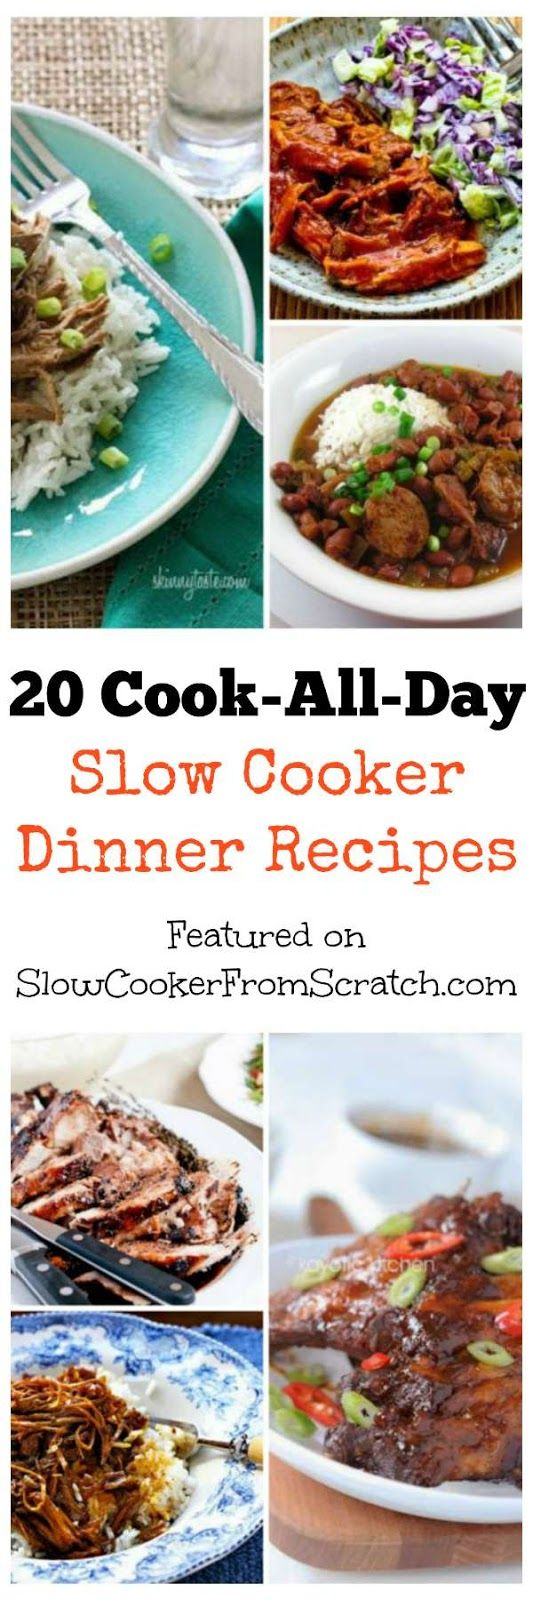 20 Cook-All-Day Slow Cooker Dinner Recipes featured on SlowCookerFromScratch.com. PIN this now so you'll have it when you need a cook-all-day dinner in the crockpot!: